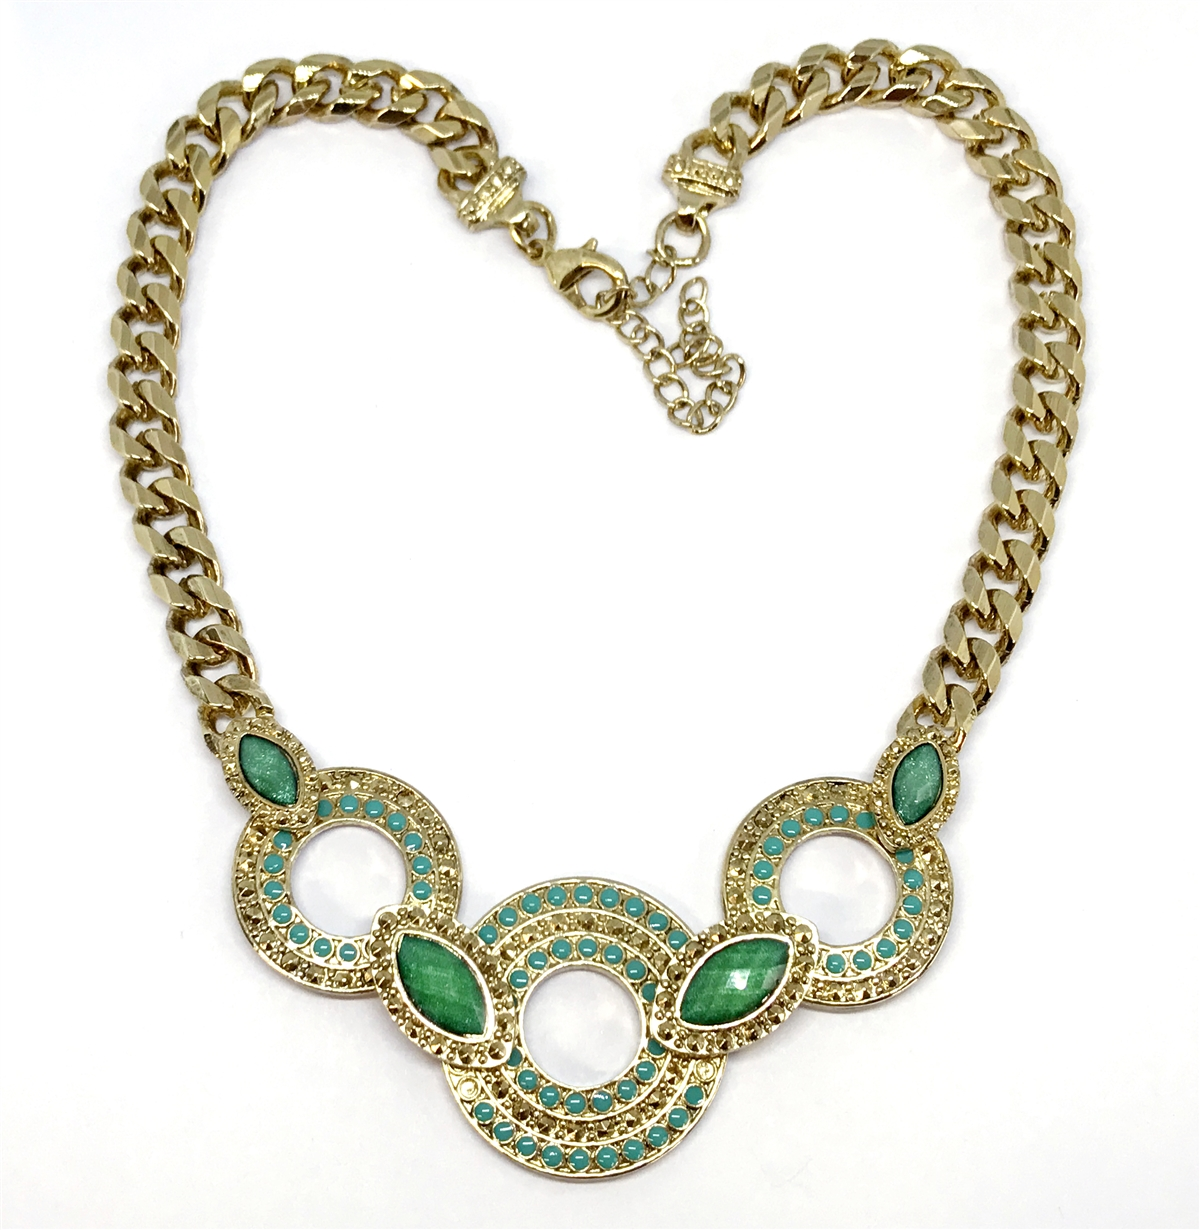 Cheap Price Vintage Choker Style Necklace Green Tones Necklaces & Pendants Fashion Jewelry